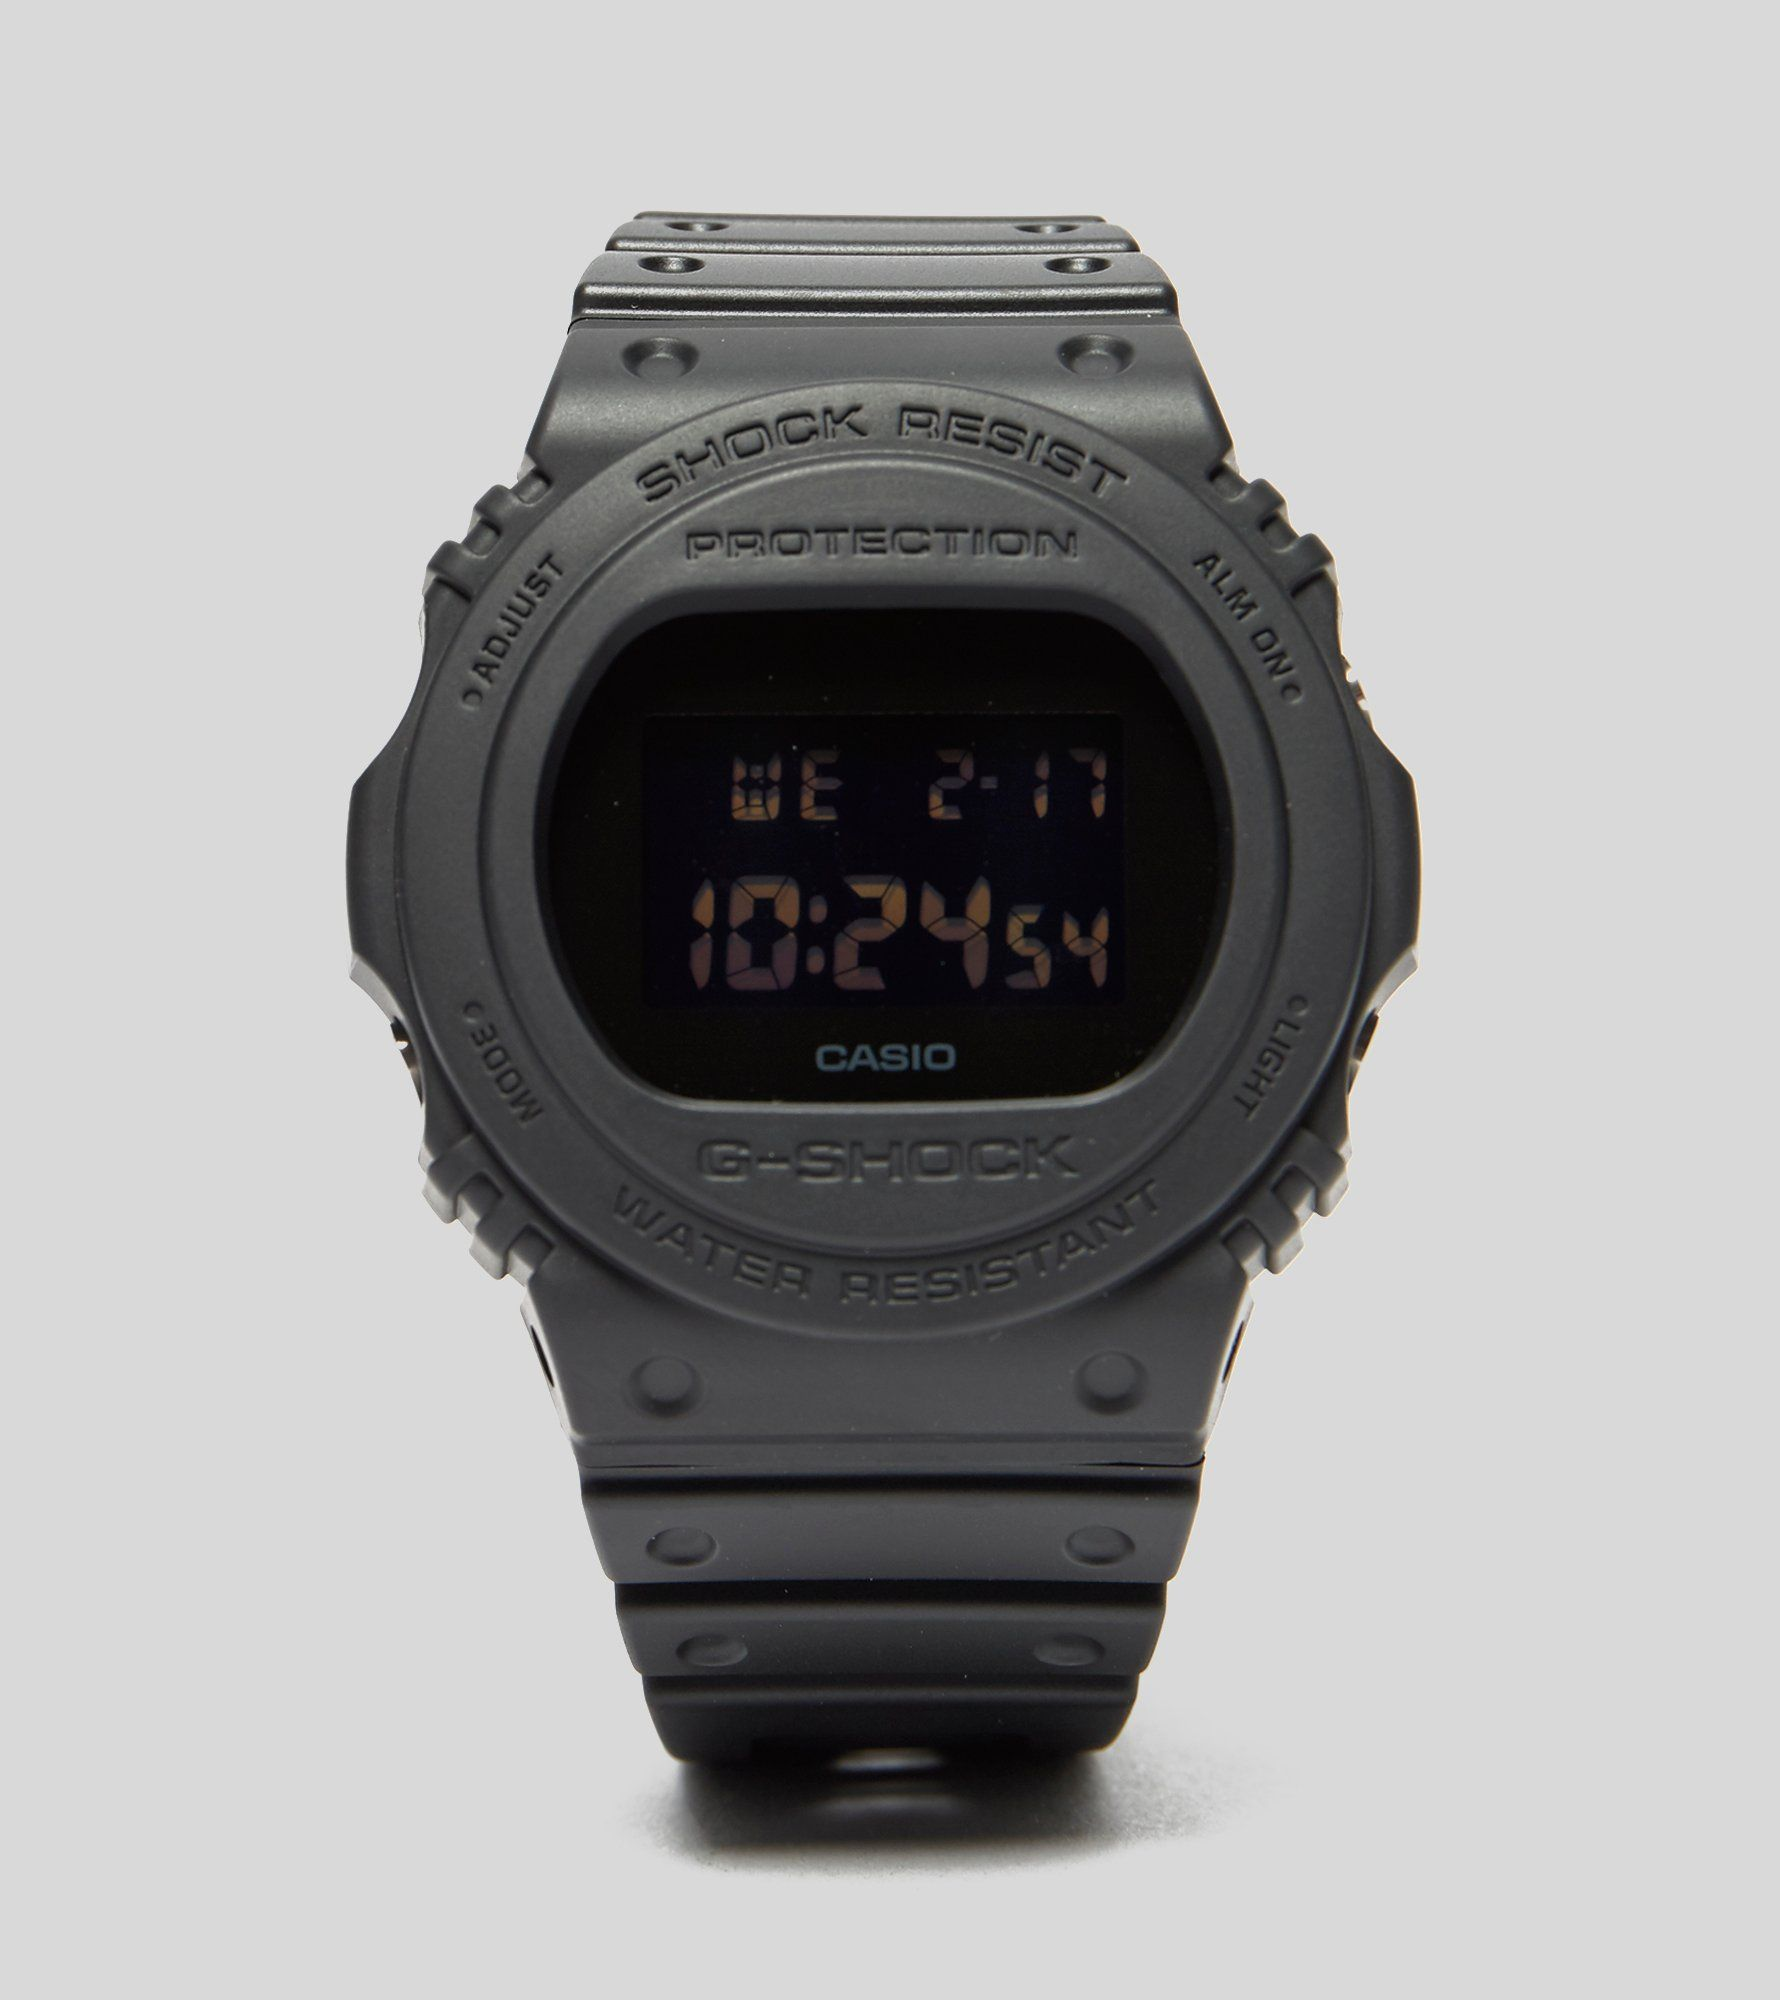 G-Shock DW-5750E-1BER Heritage Watch